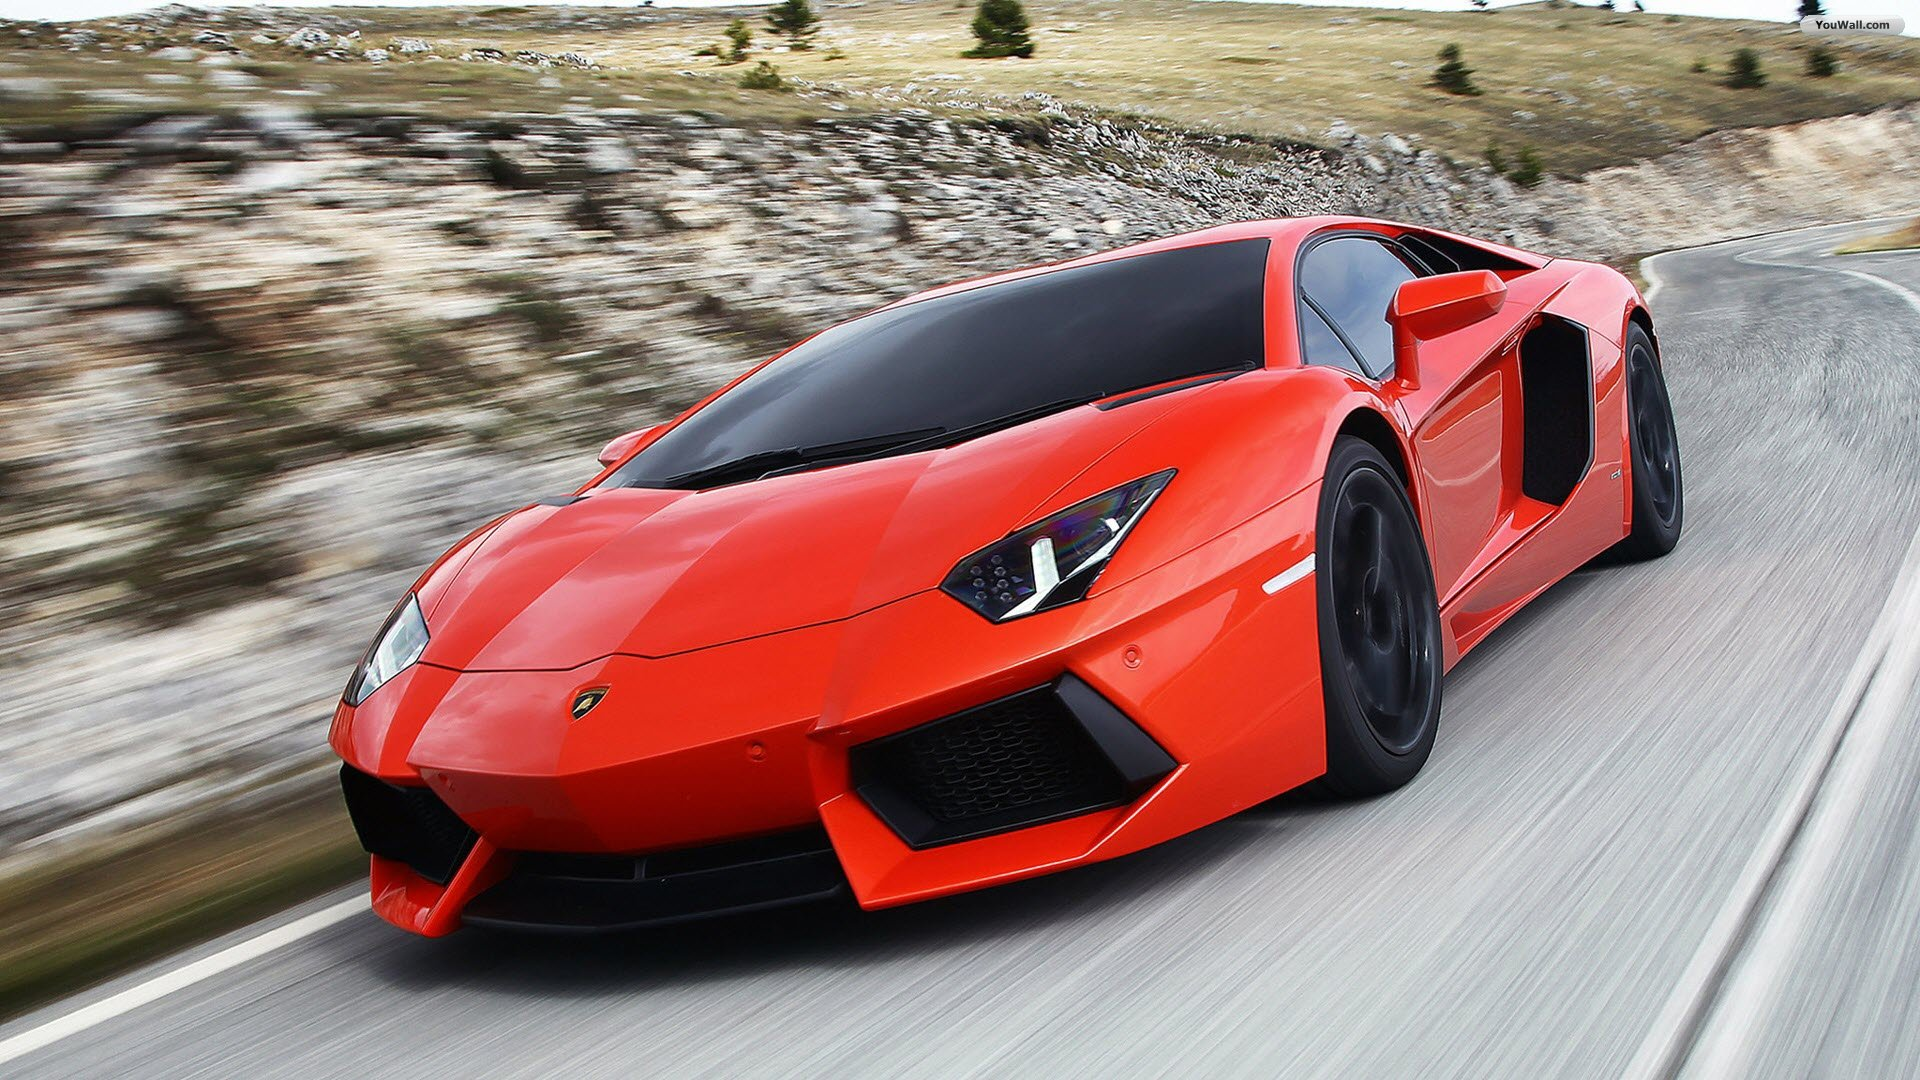 Lamborghini Aventador Wallpaper Hd 1920x1080